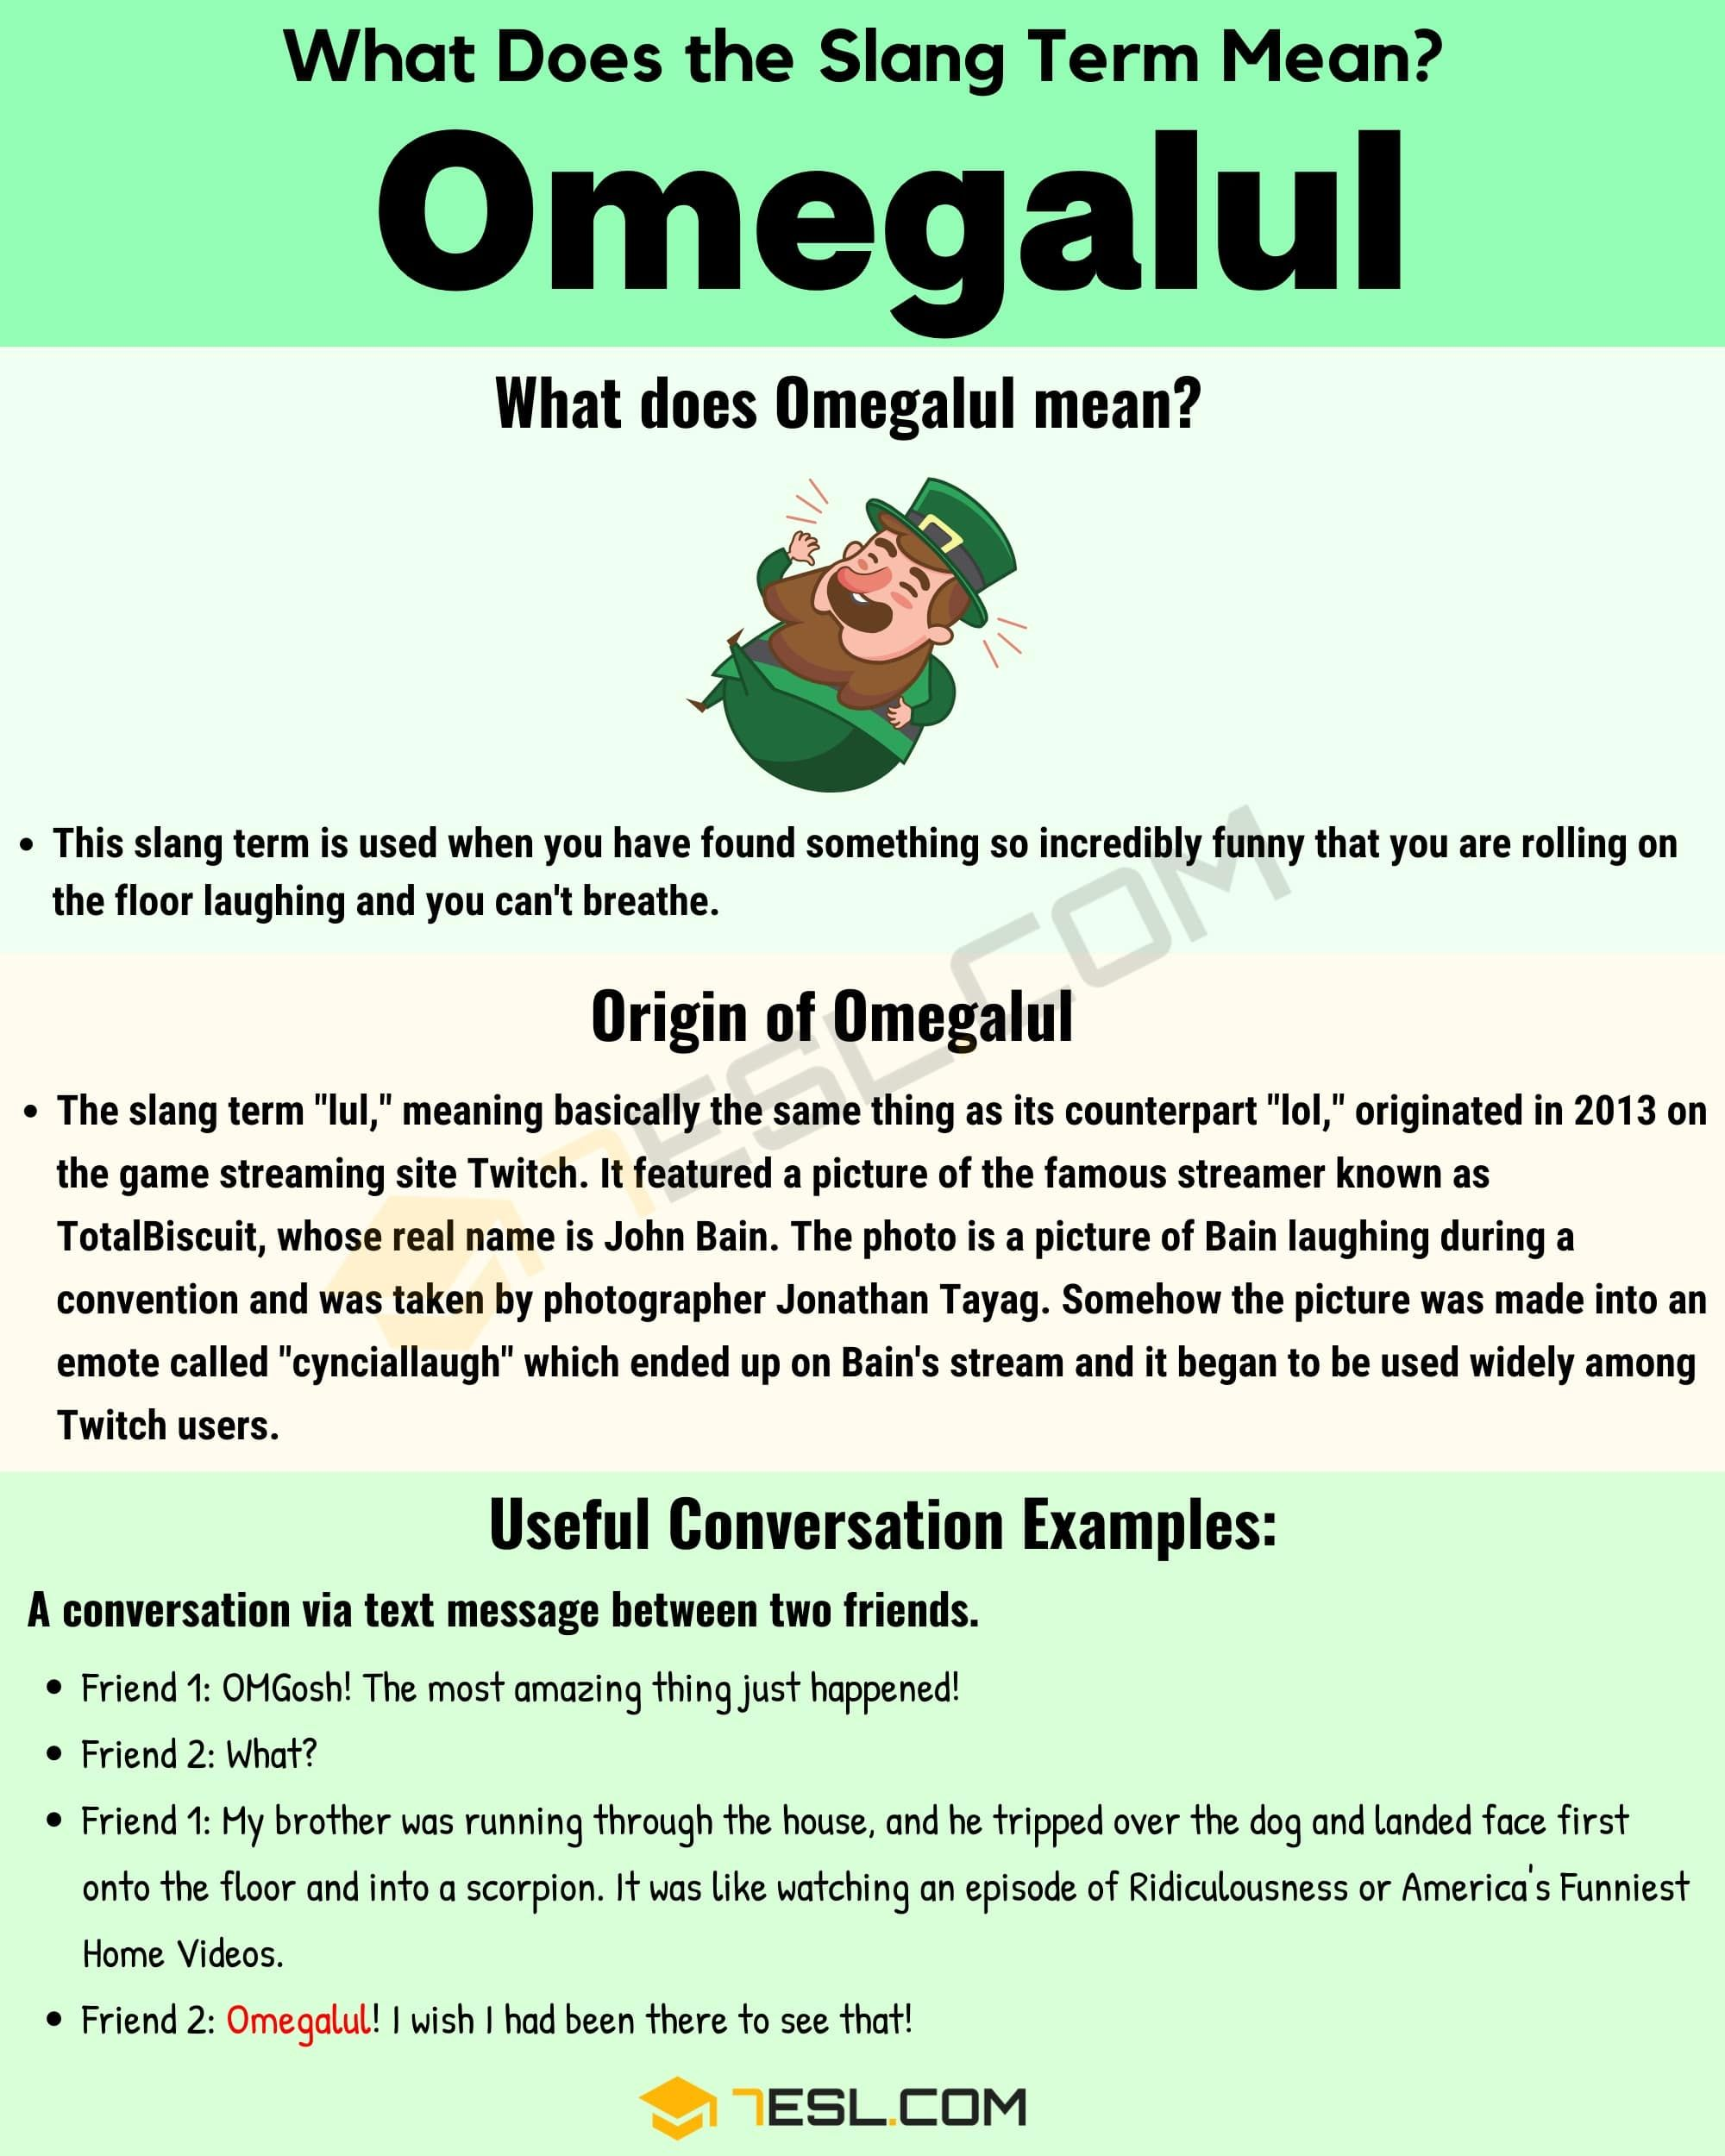 Omegalul Meaning With Useful Conversation Example In English 7esl Old Quote Lesson Know Definition Of Paraphrase Language